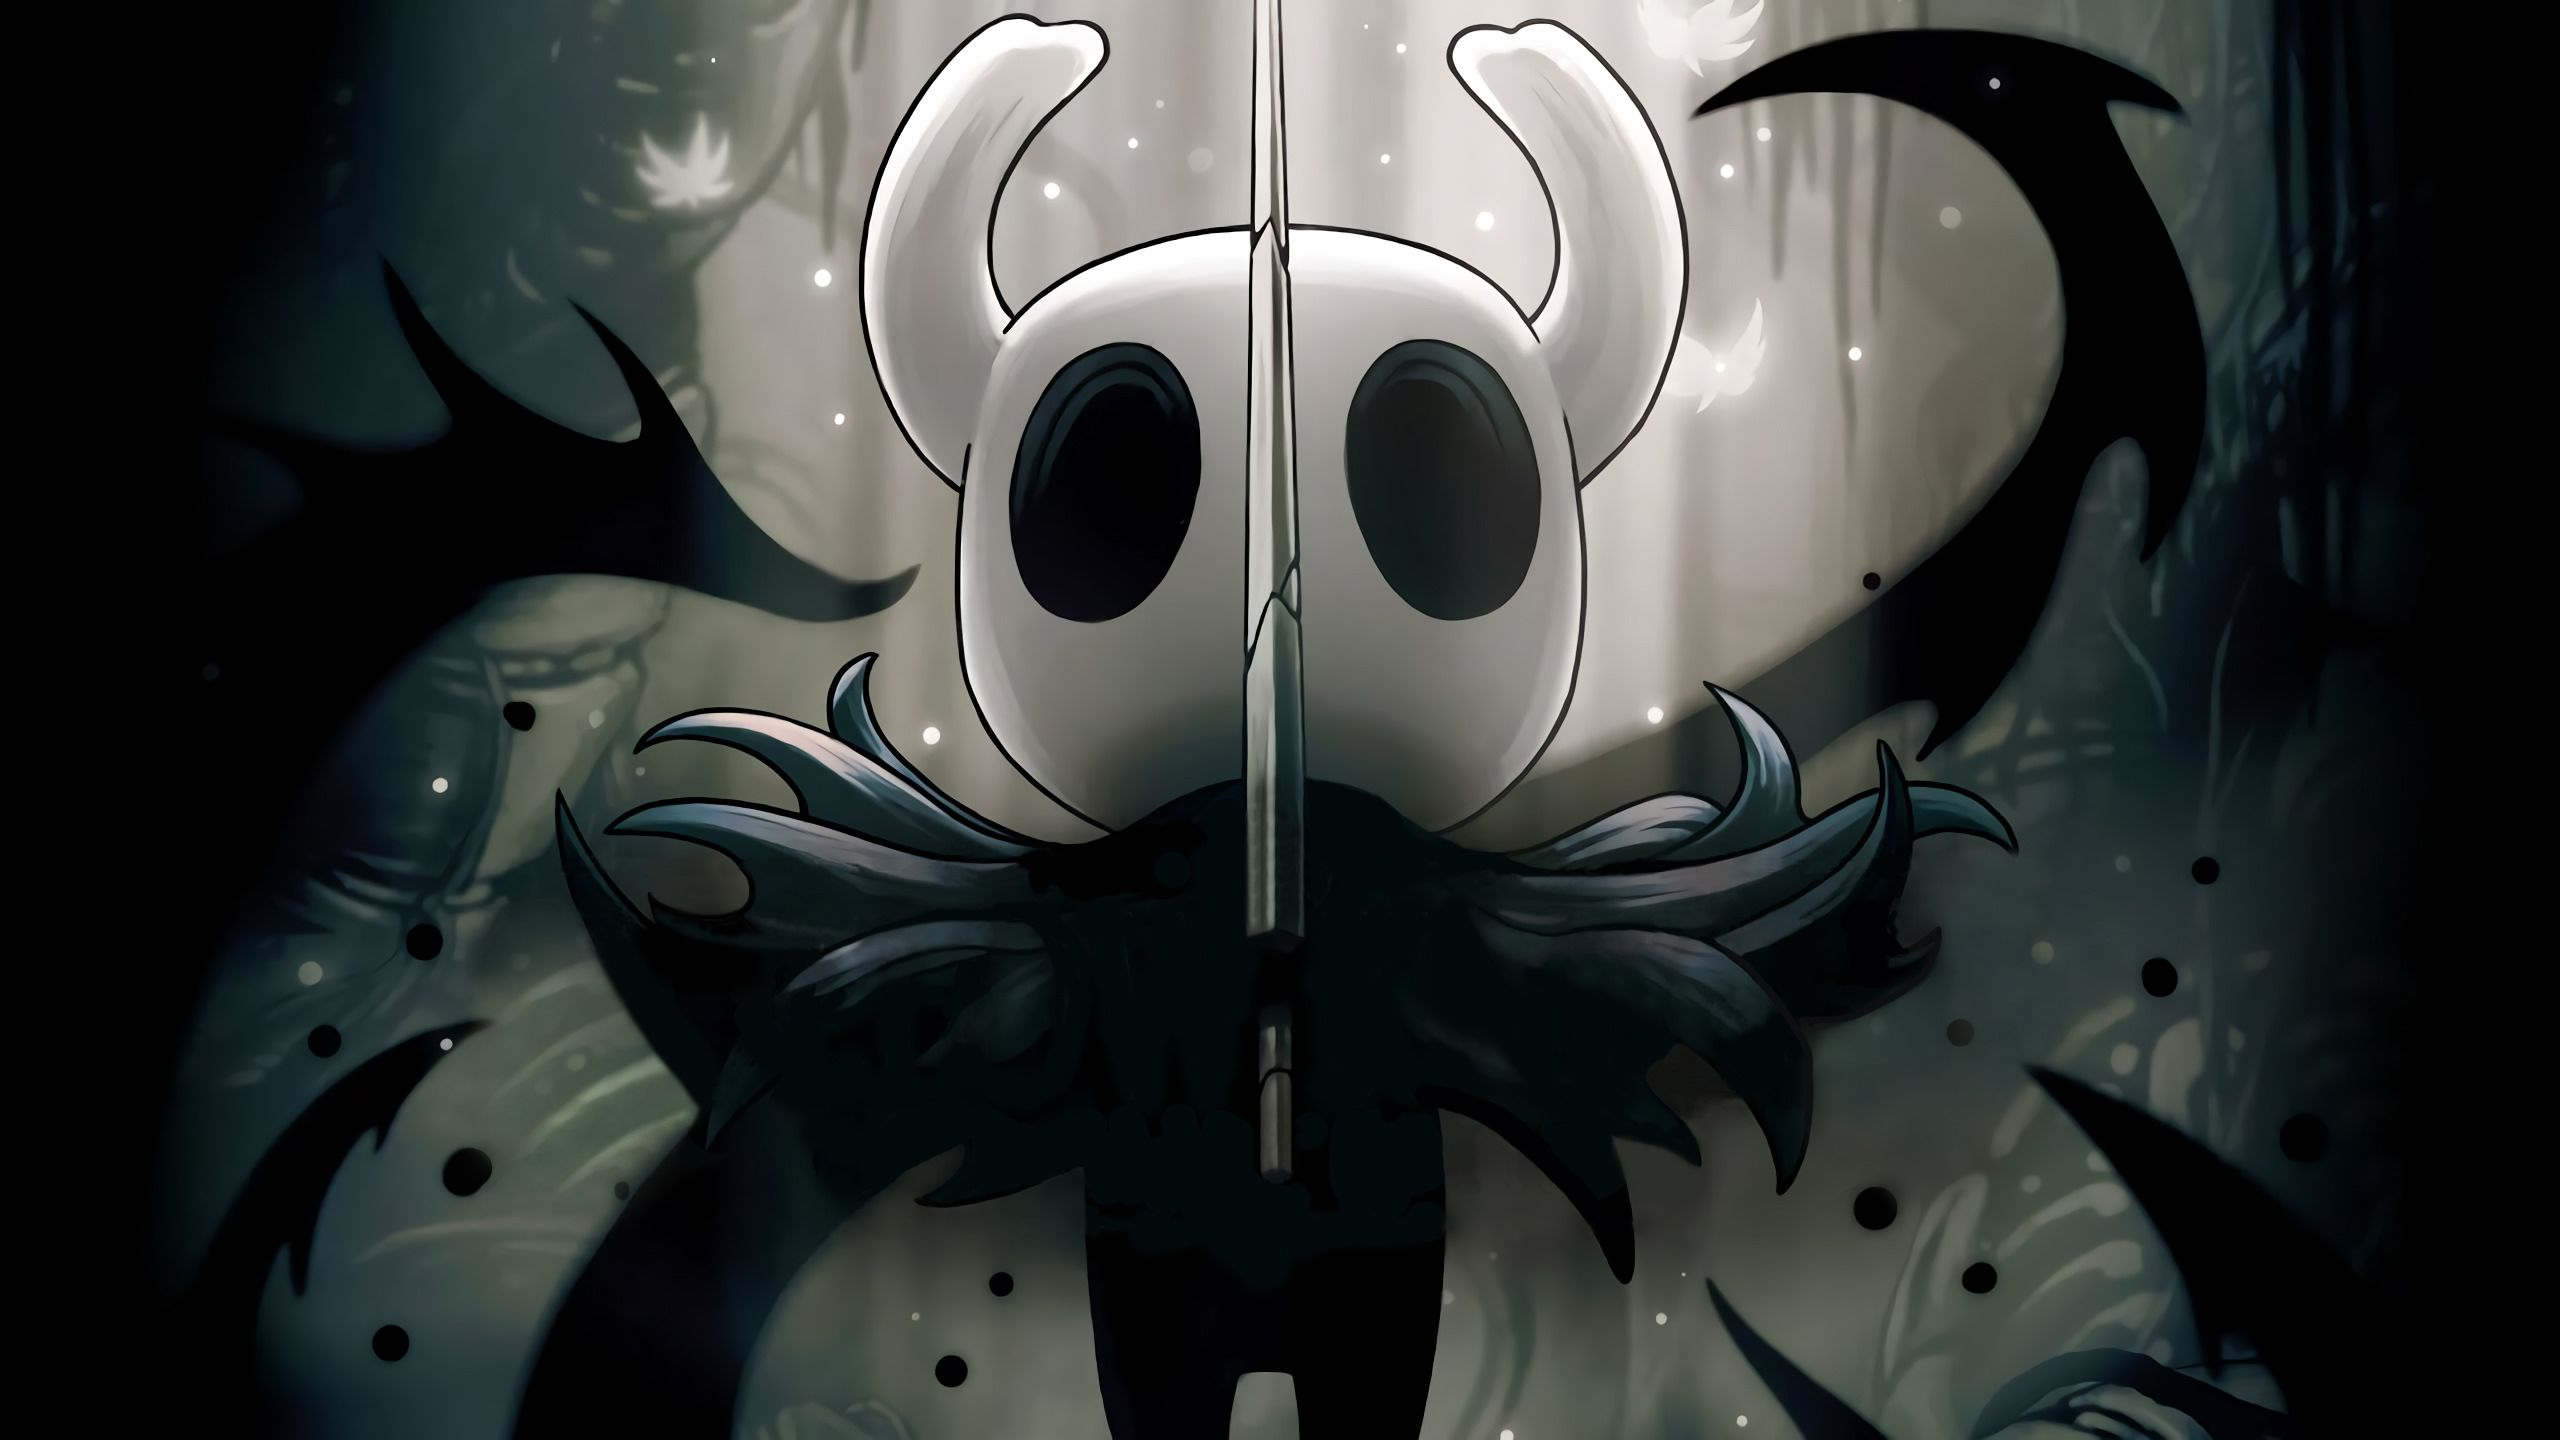 hollow knight screensaver images